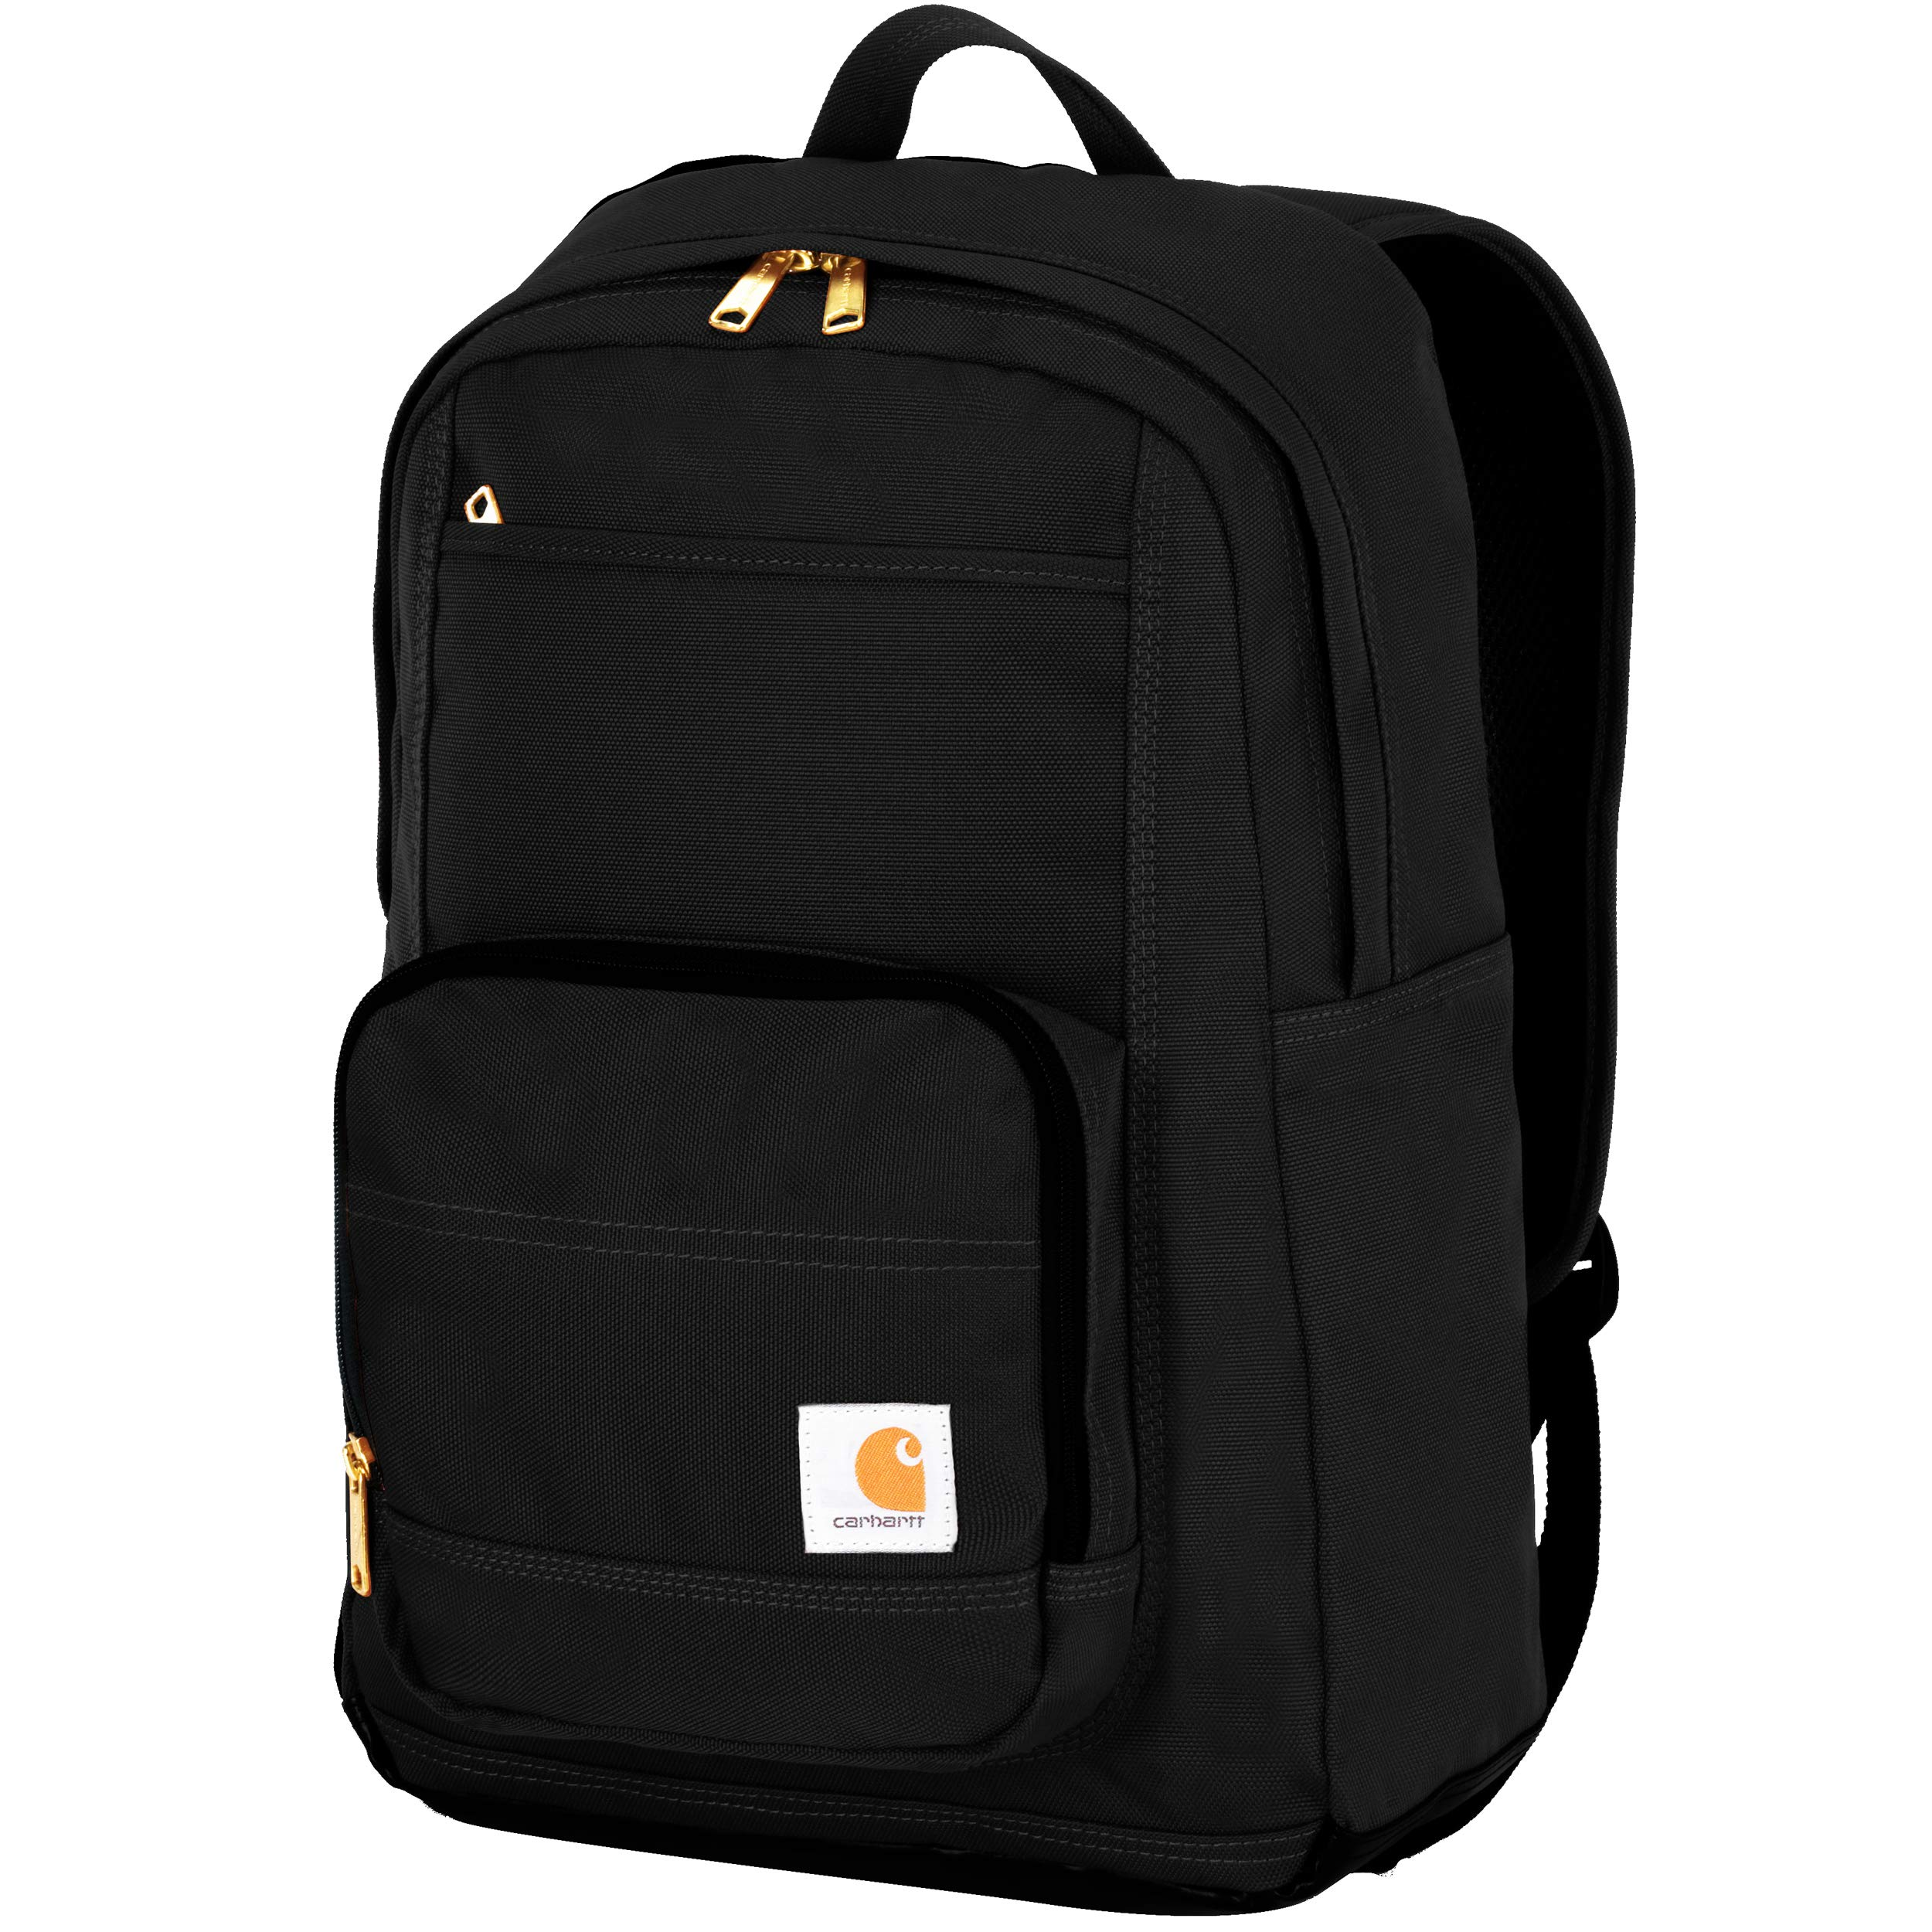 Carhartt Legacy Classic Work Backpack with Padded Laptop Sleeve, Black by Carhartt